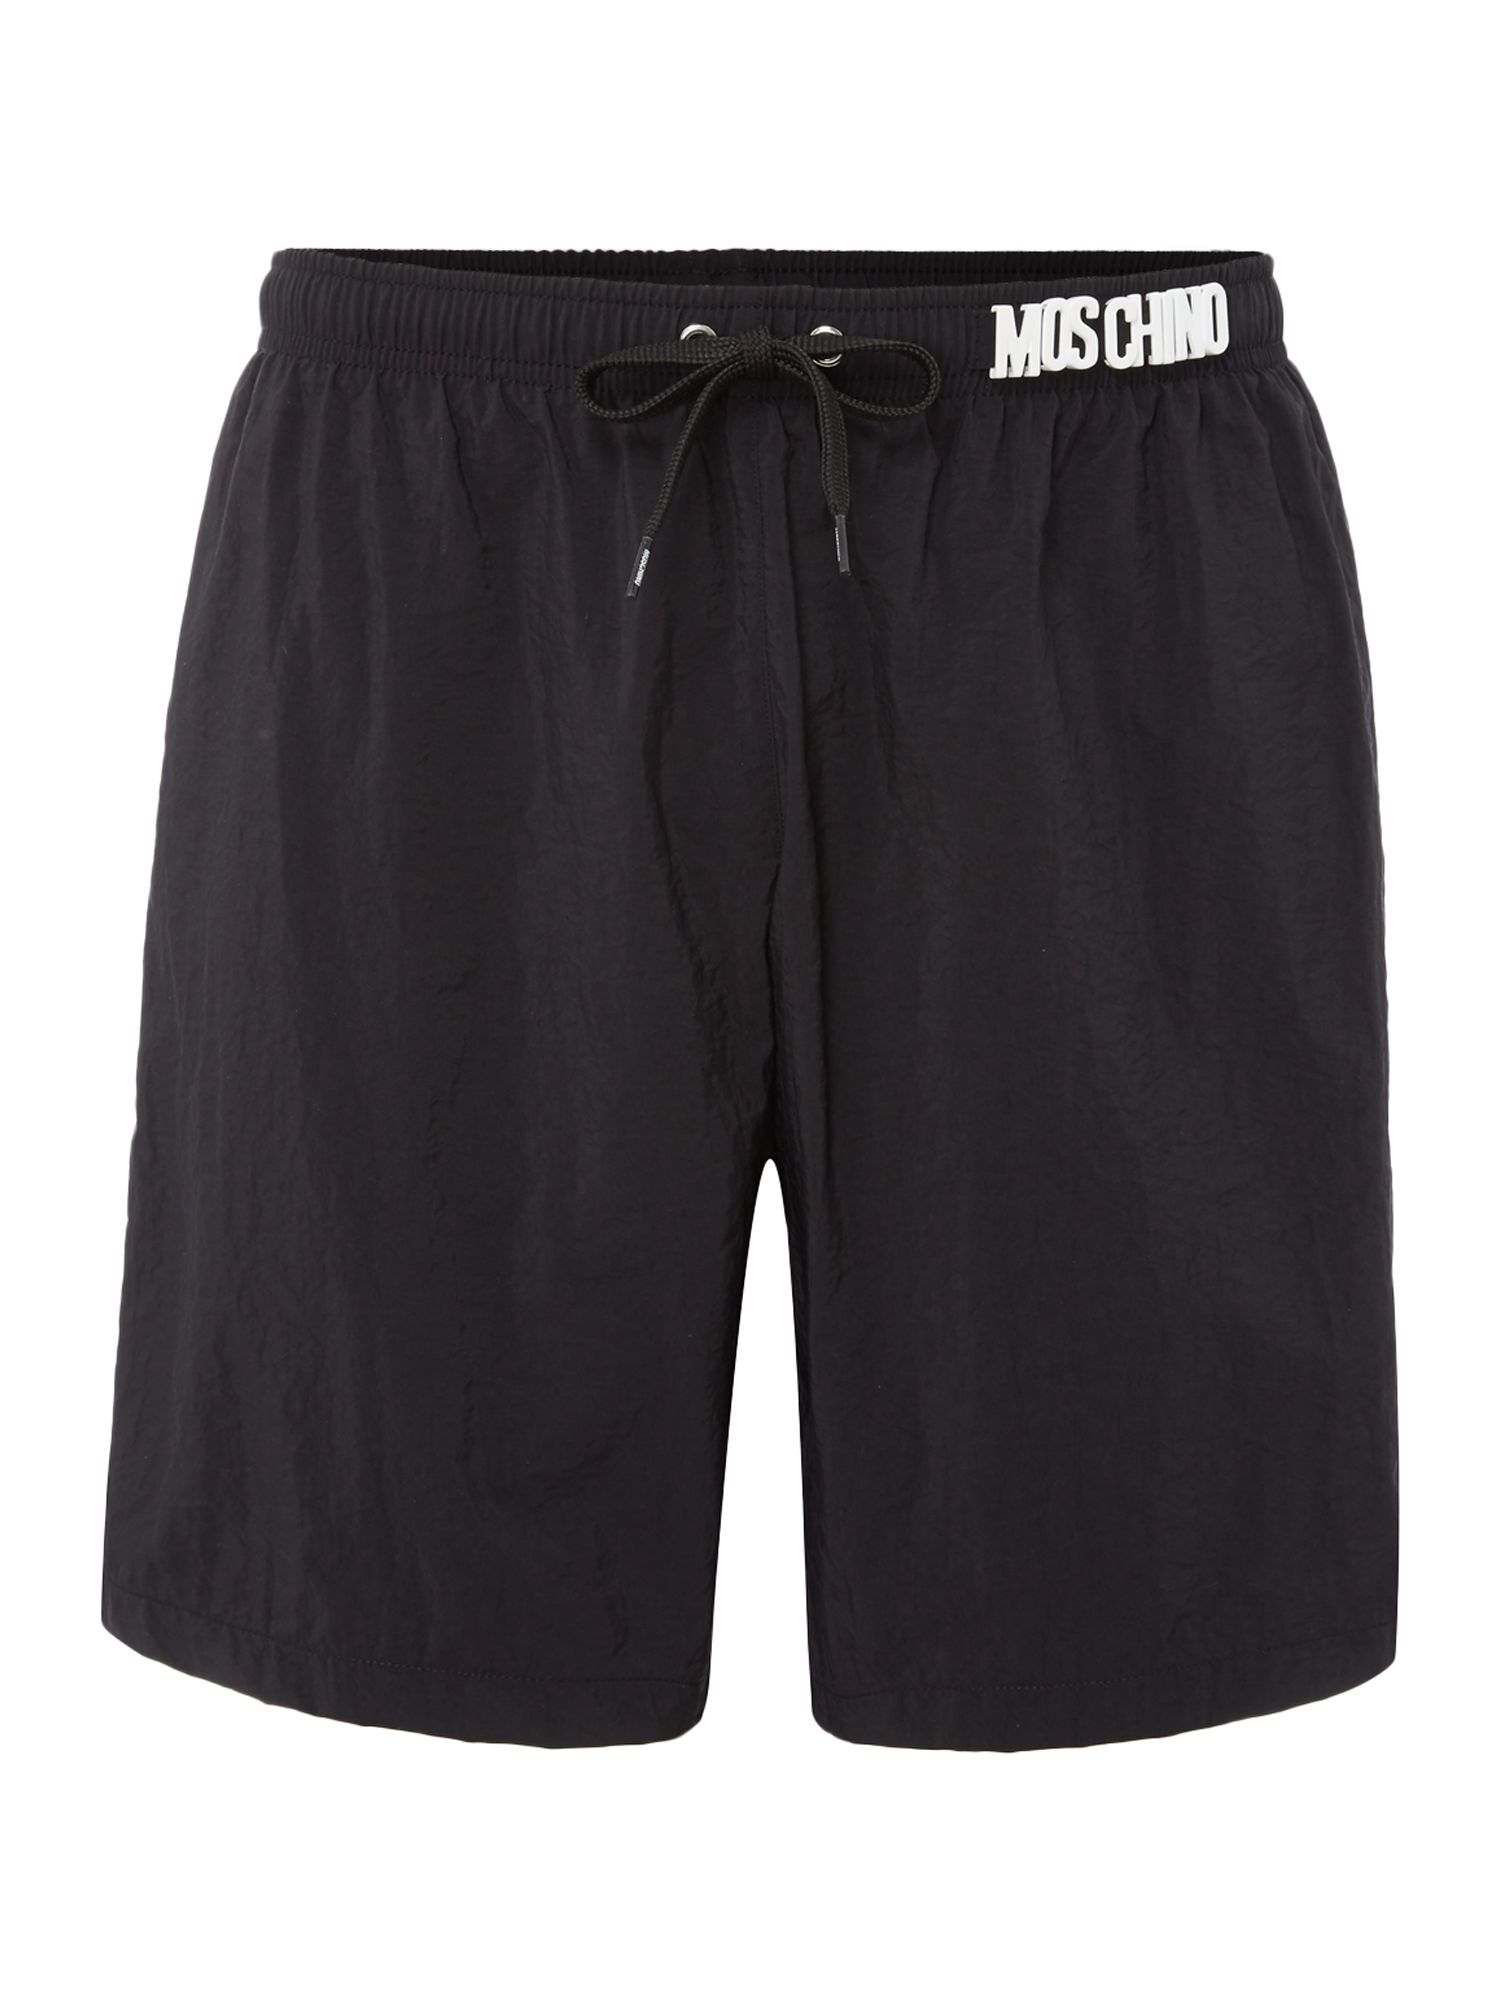 Men's Moschino Medium Plain Shorts, Black